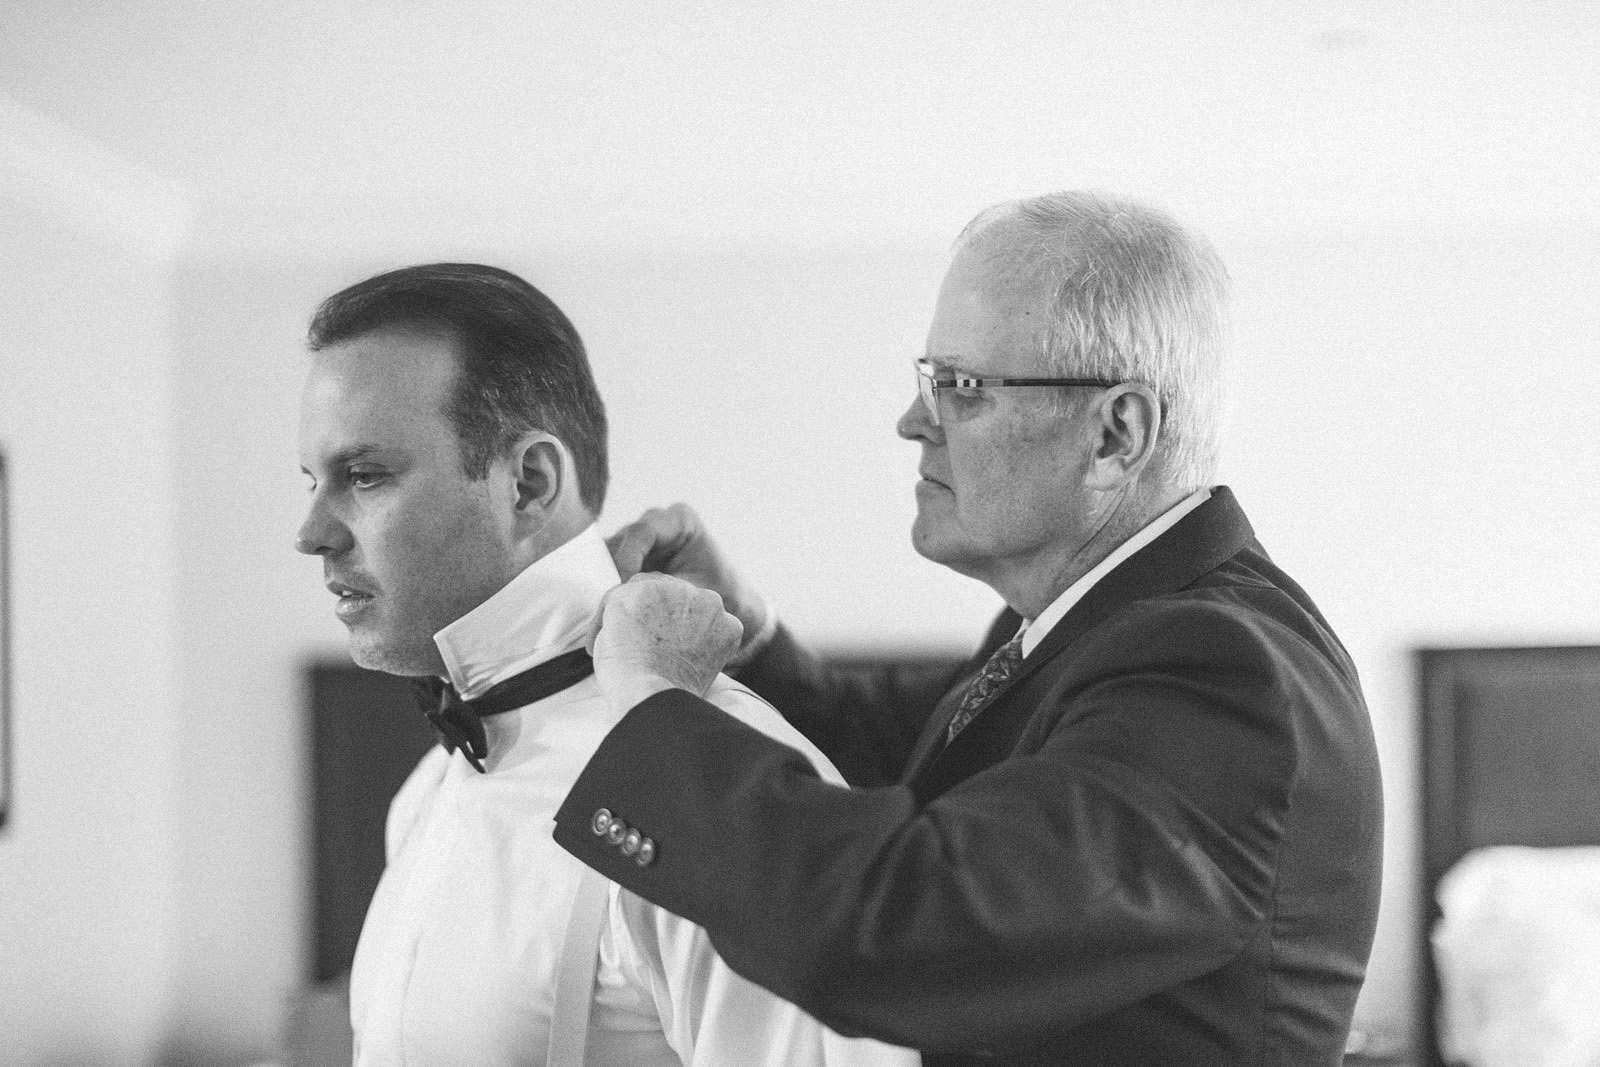 Father helps Groom with bowtie